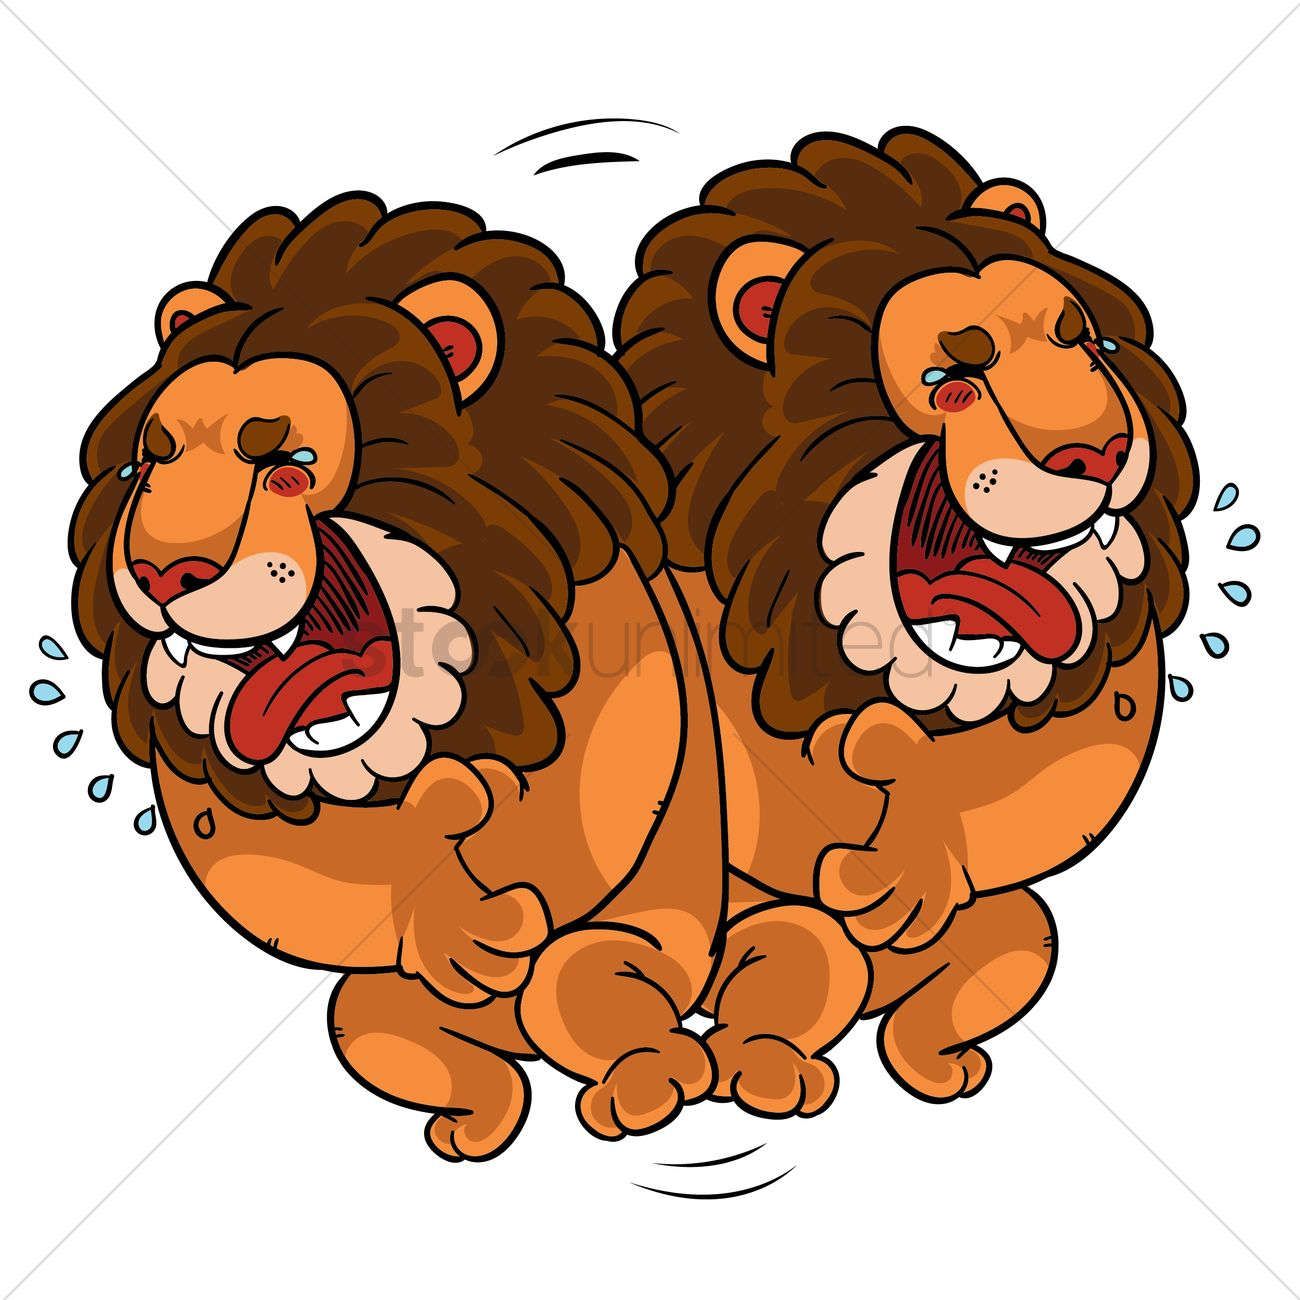 Cartoon lion rolling on floor laughing